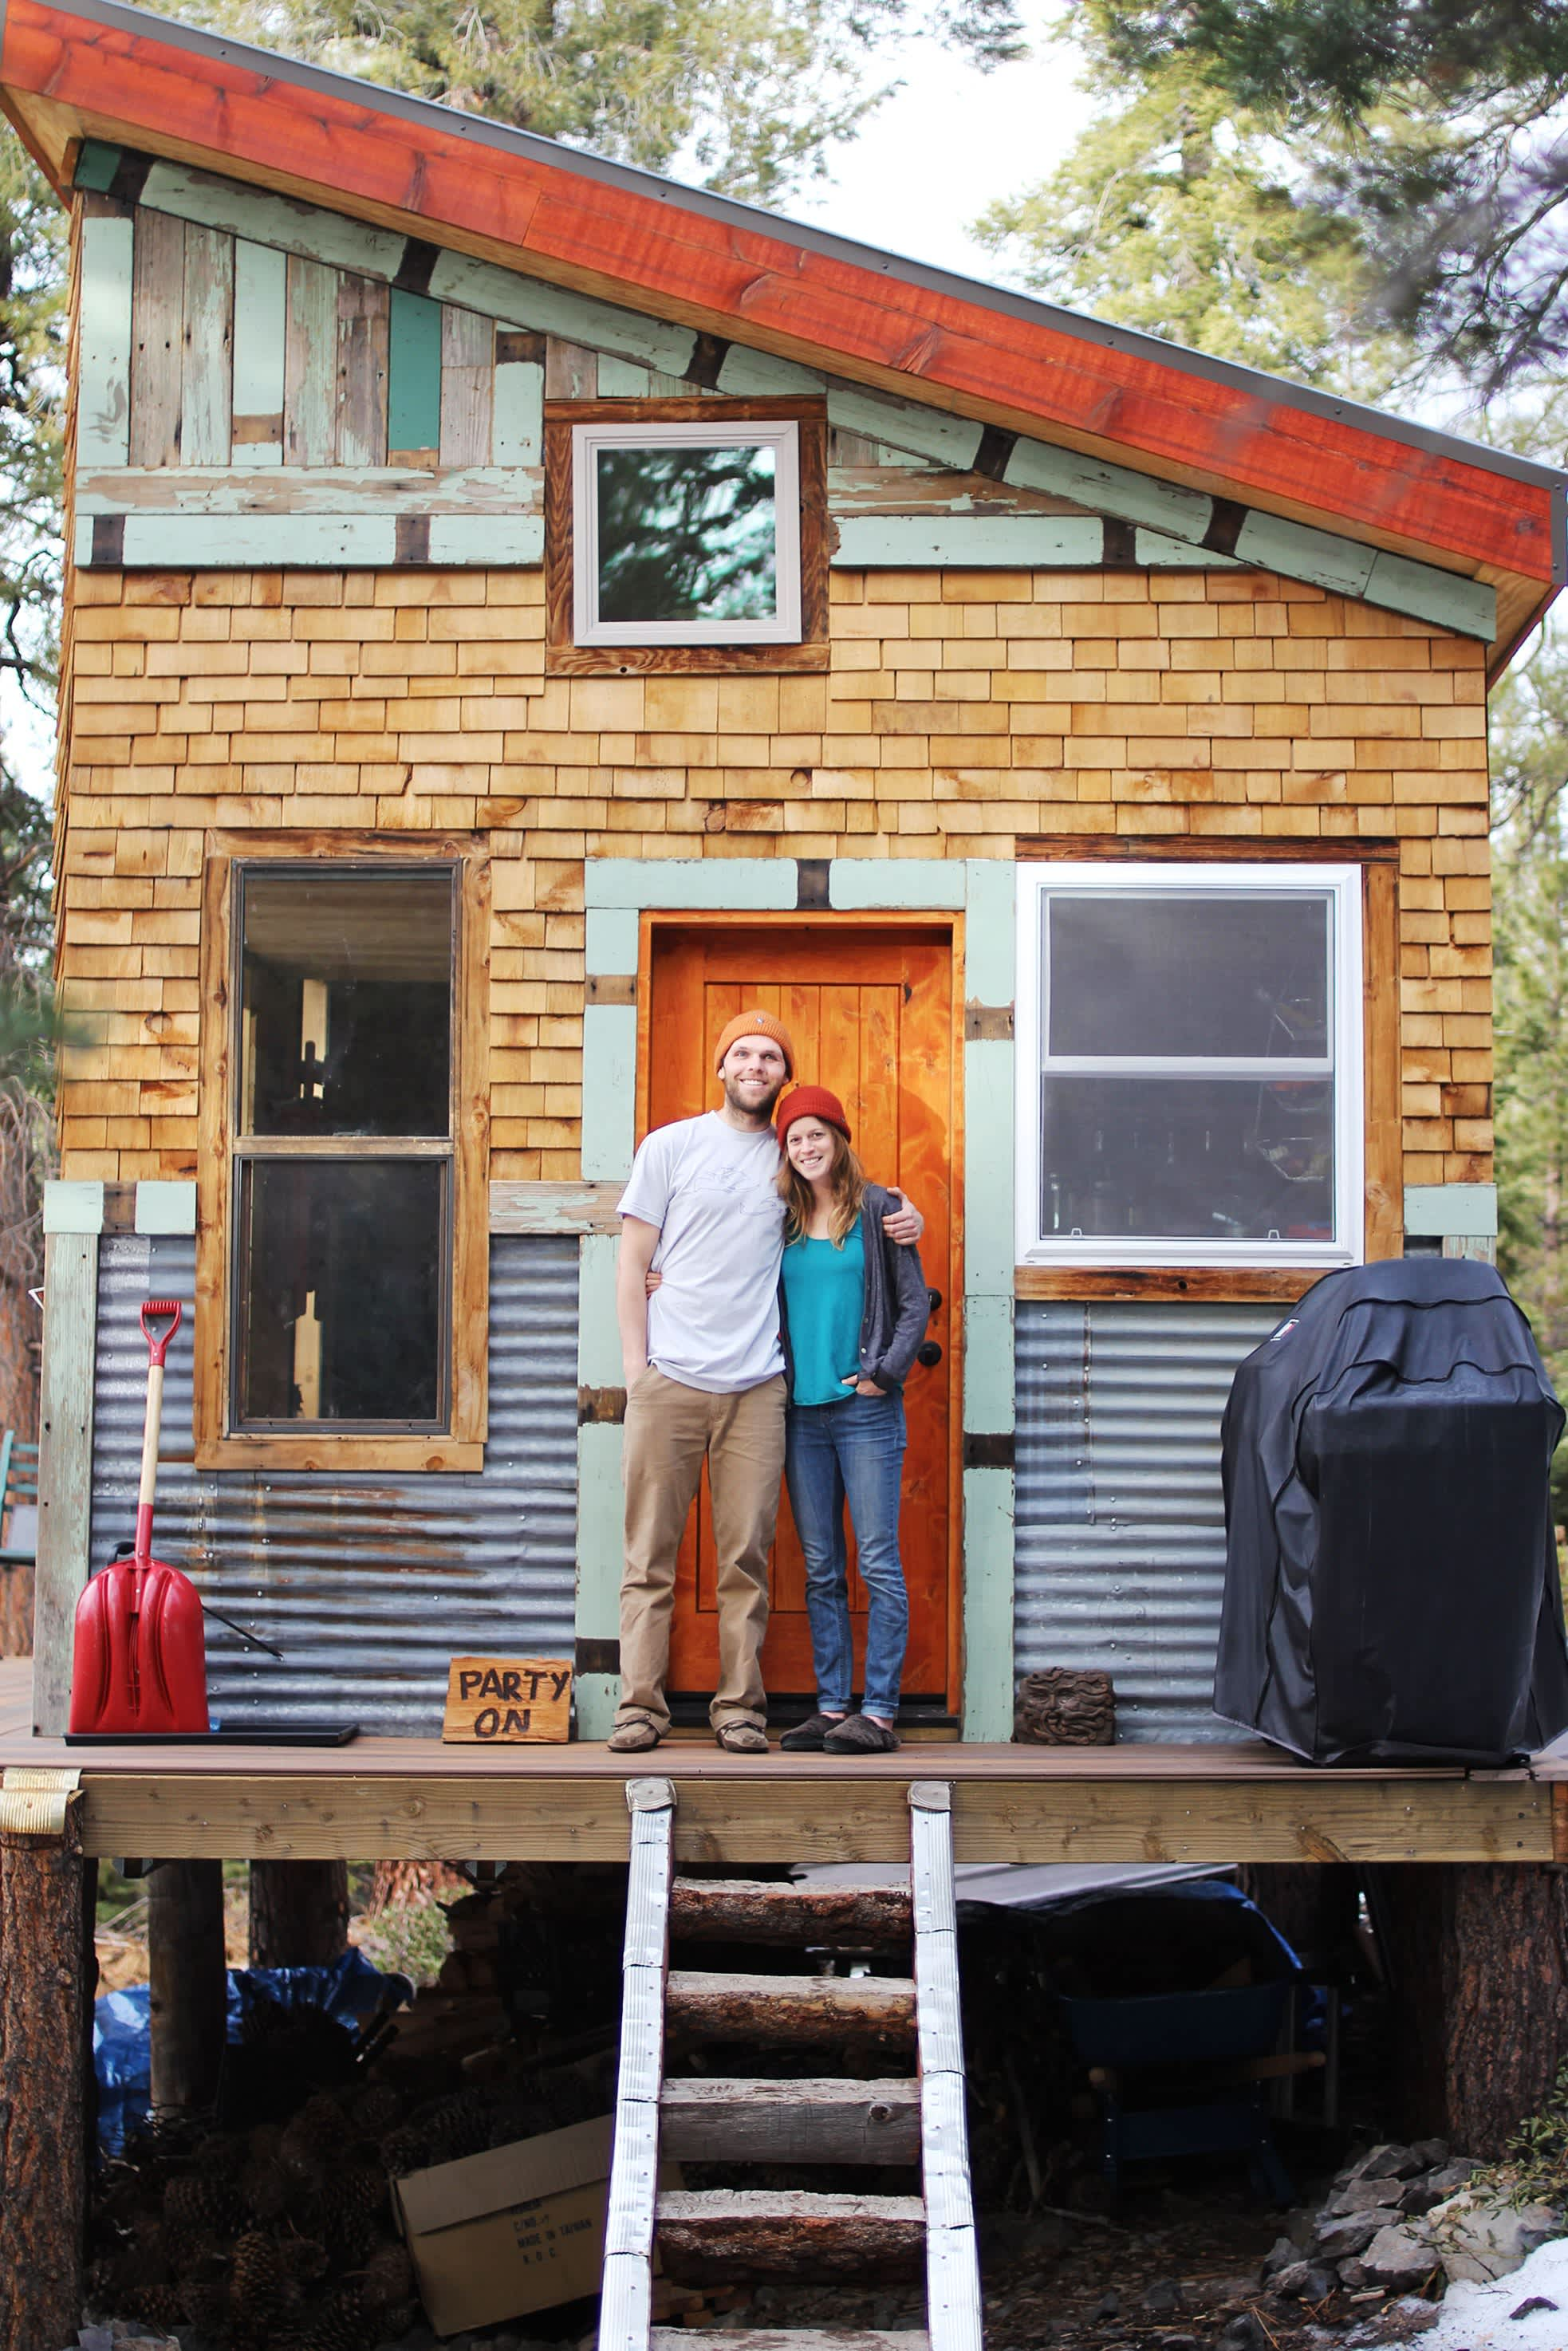 House Tour: A DIY Self-Sustainable Micro-Cabin in Cali | Apartment